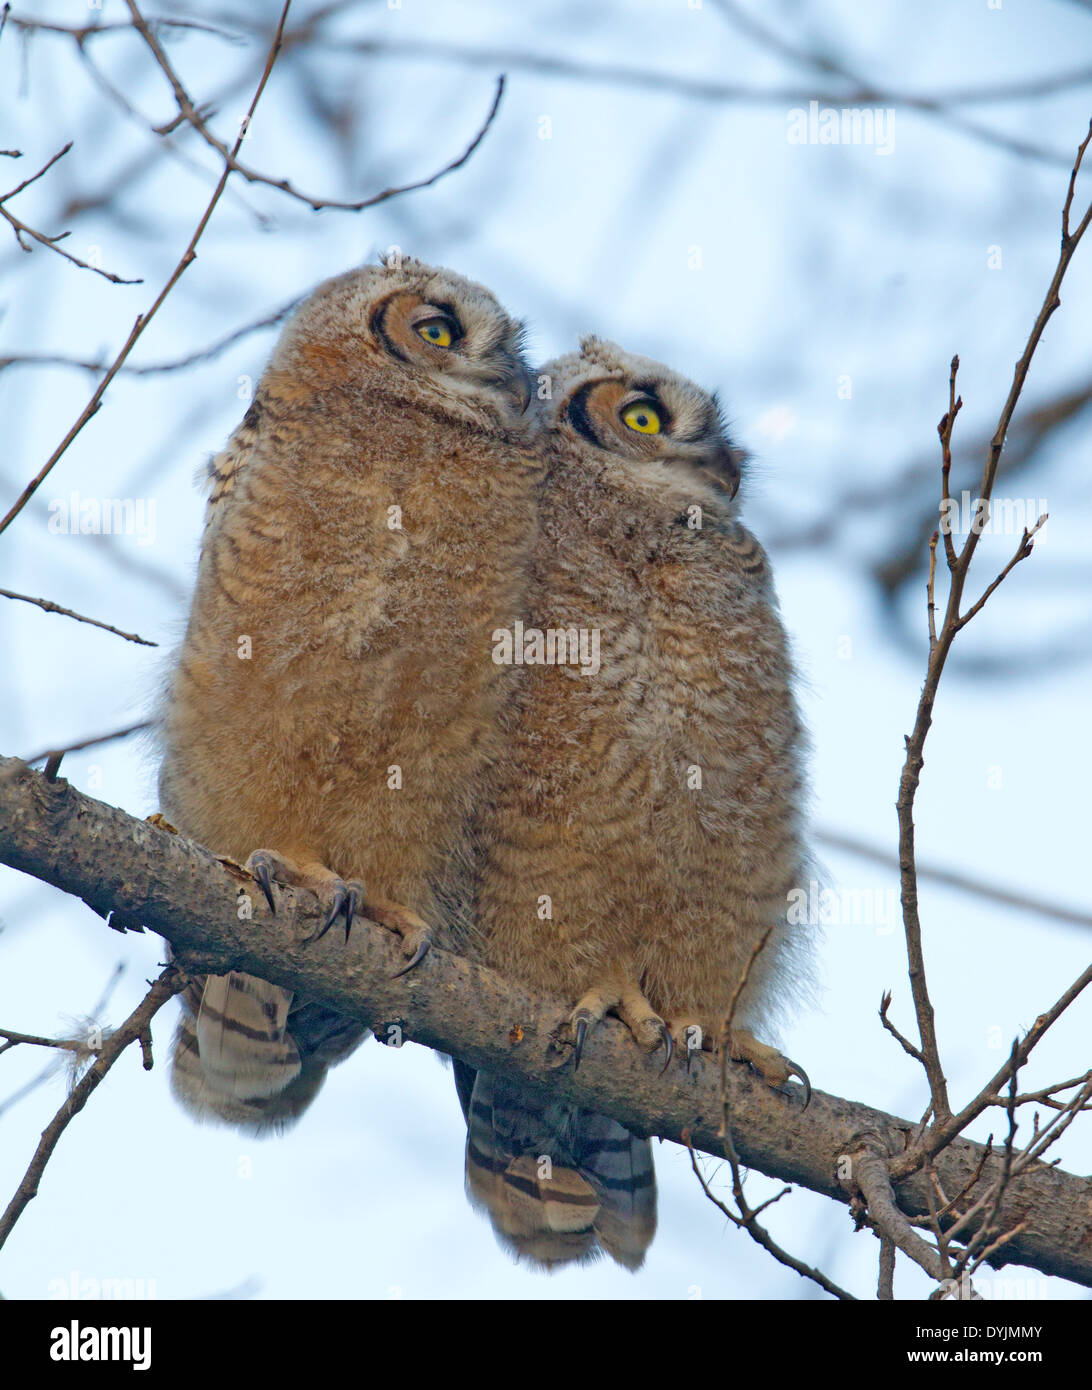 Two Great Horned Owl Owlet Fledglings - Stock Image